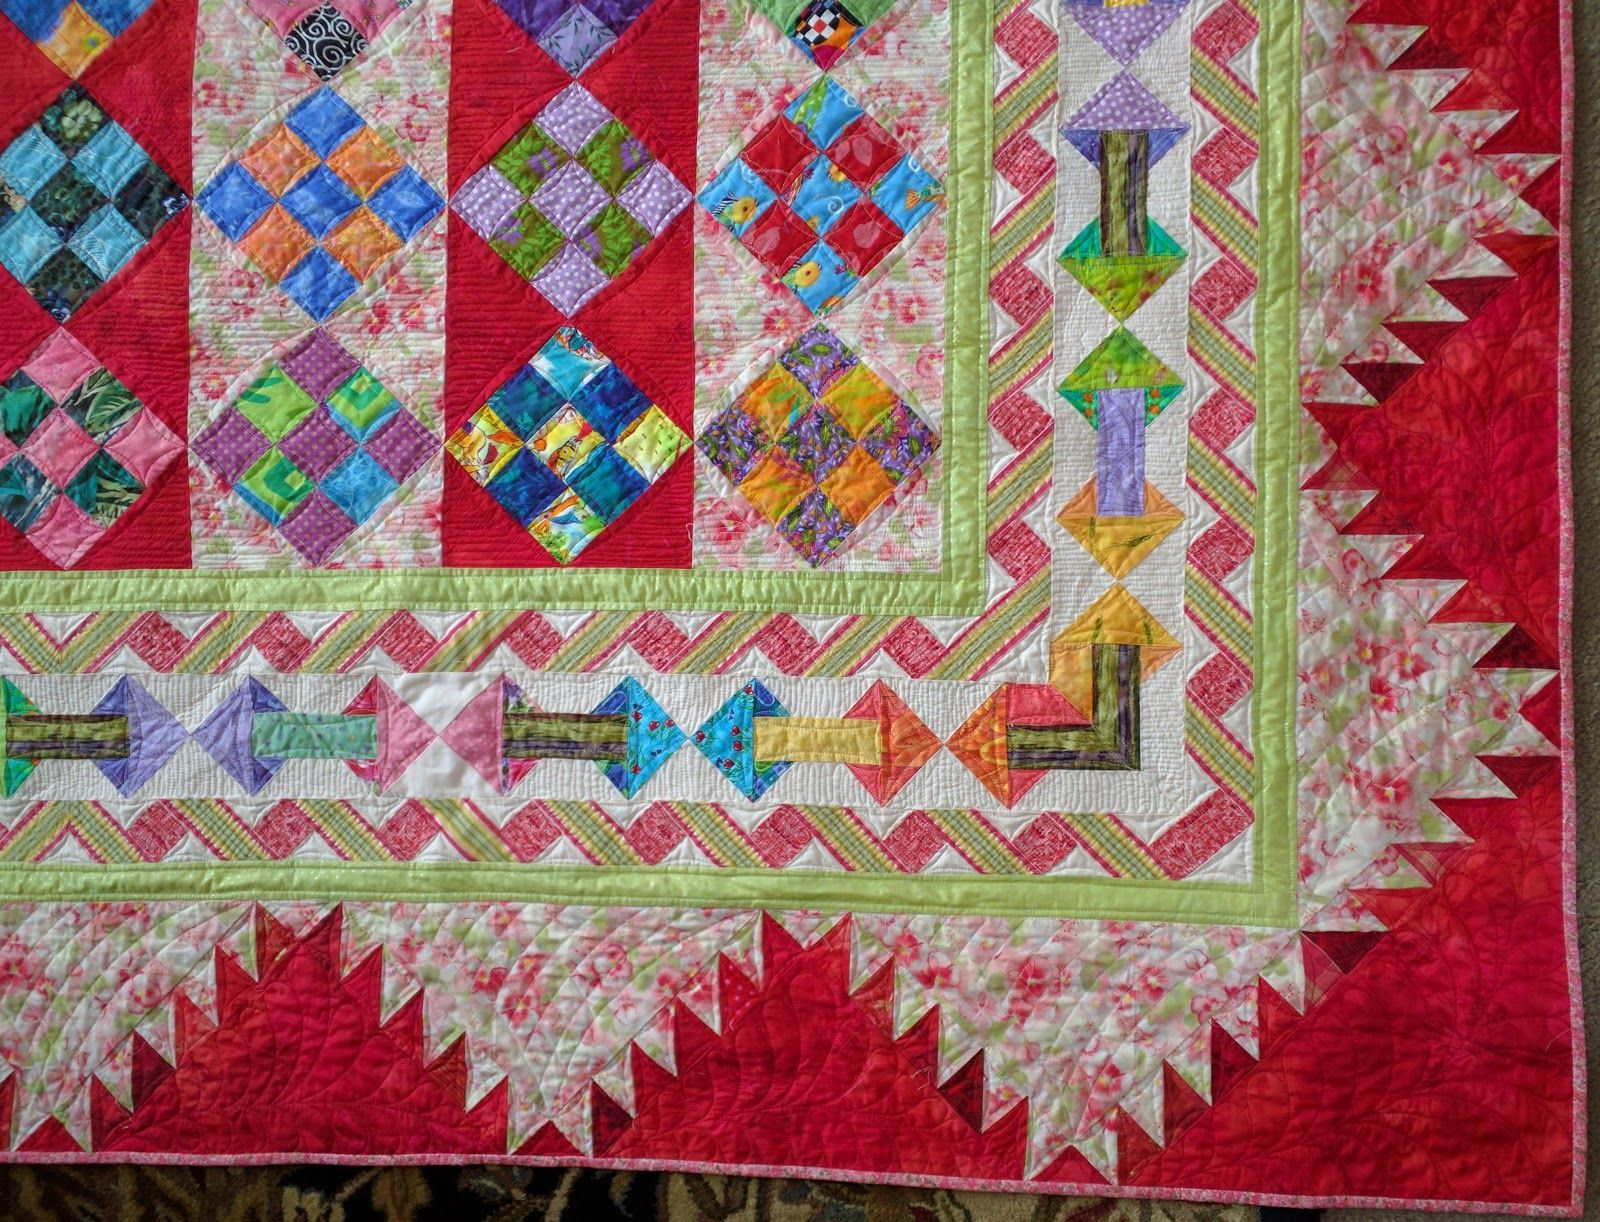 A blog about quilts, quilting, reading and travel. | Quilt ... : quilt borders pinterest - Adamdwight.com